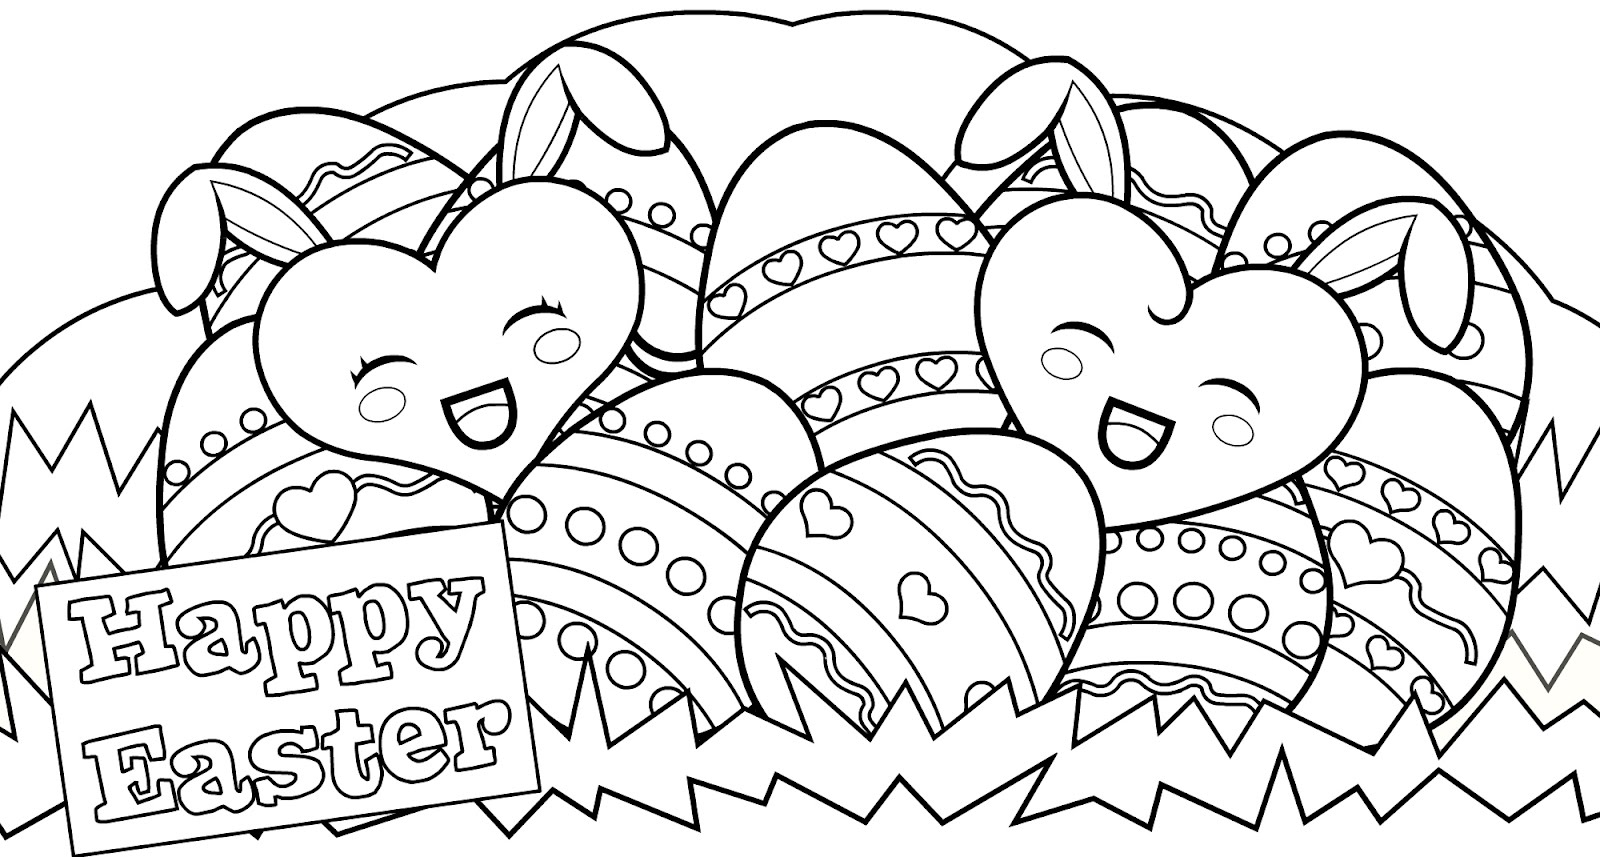 15 Easter Colouring In Pages - The Organised Housewife